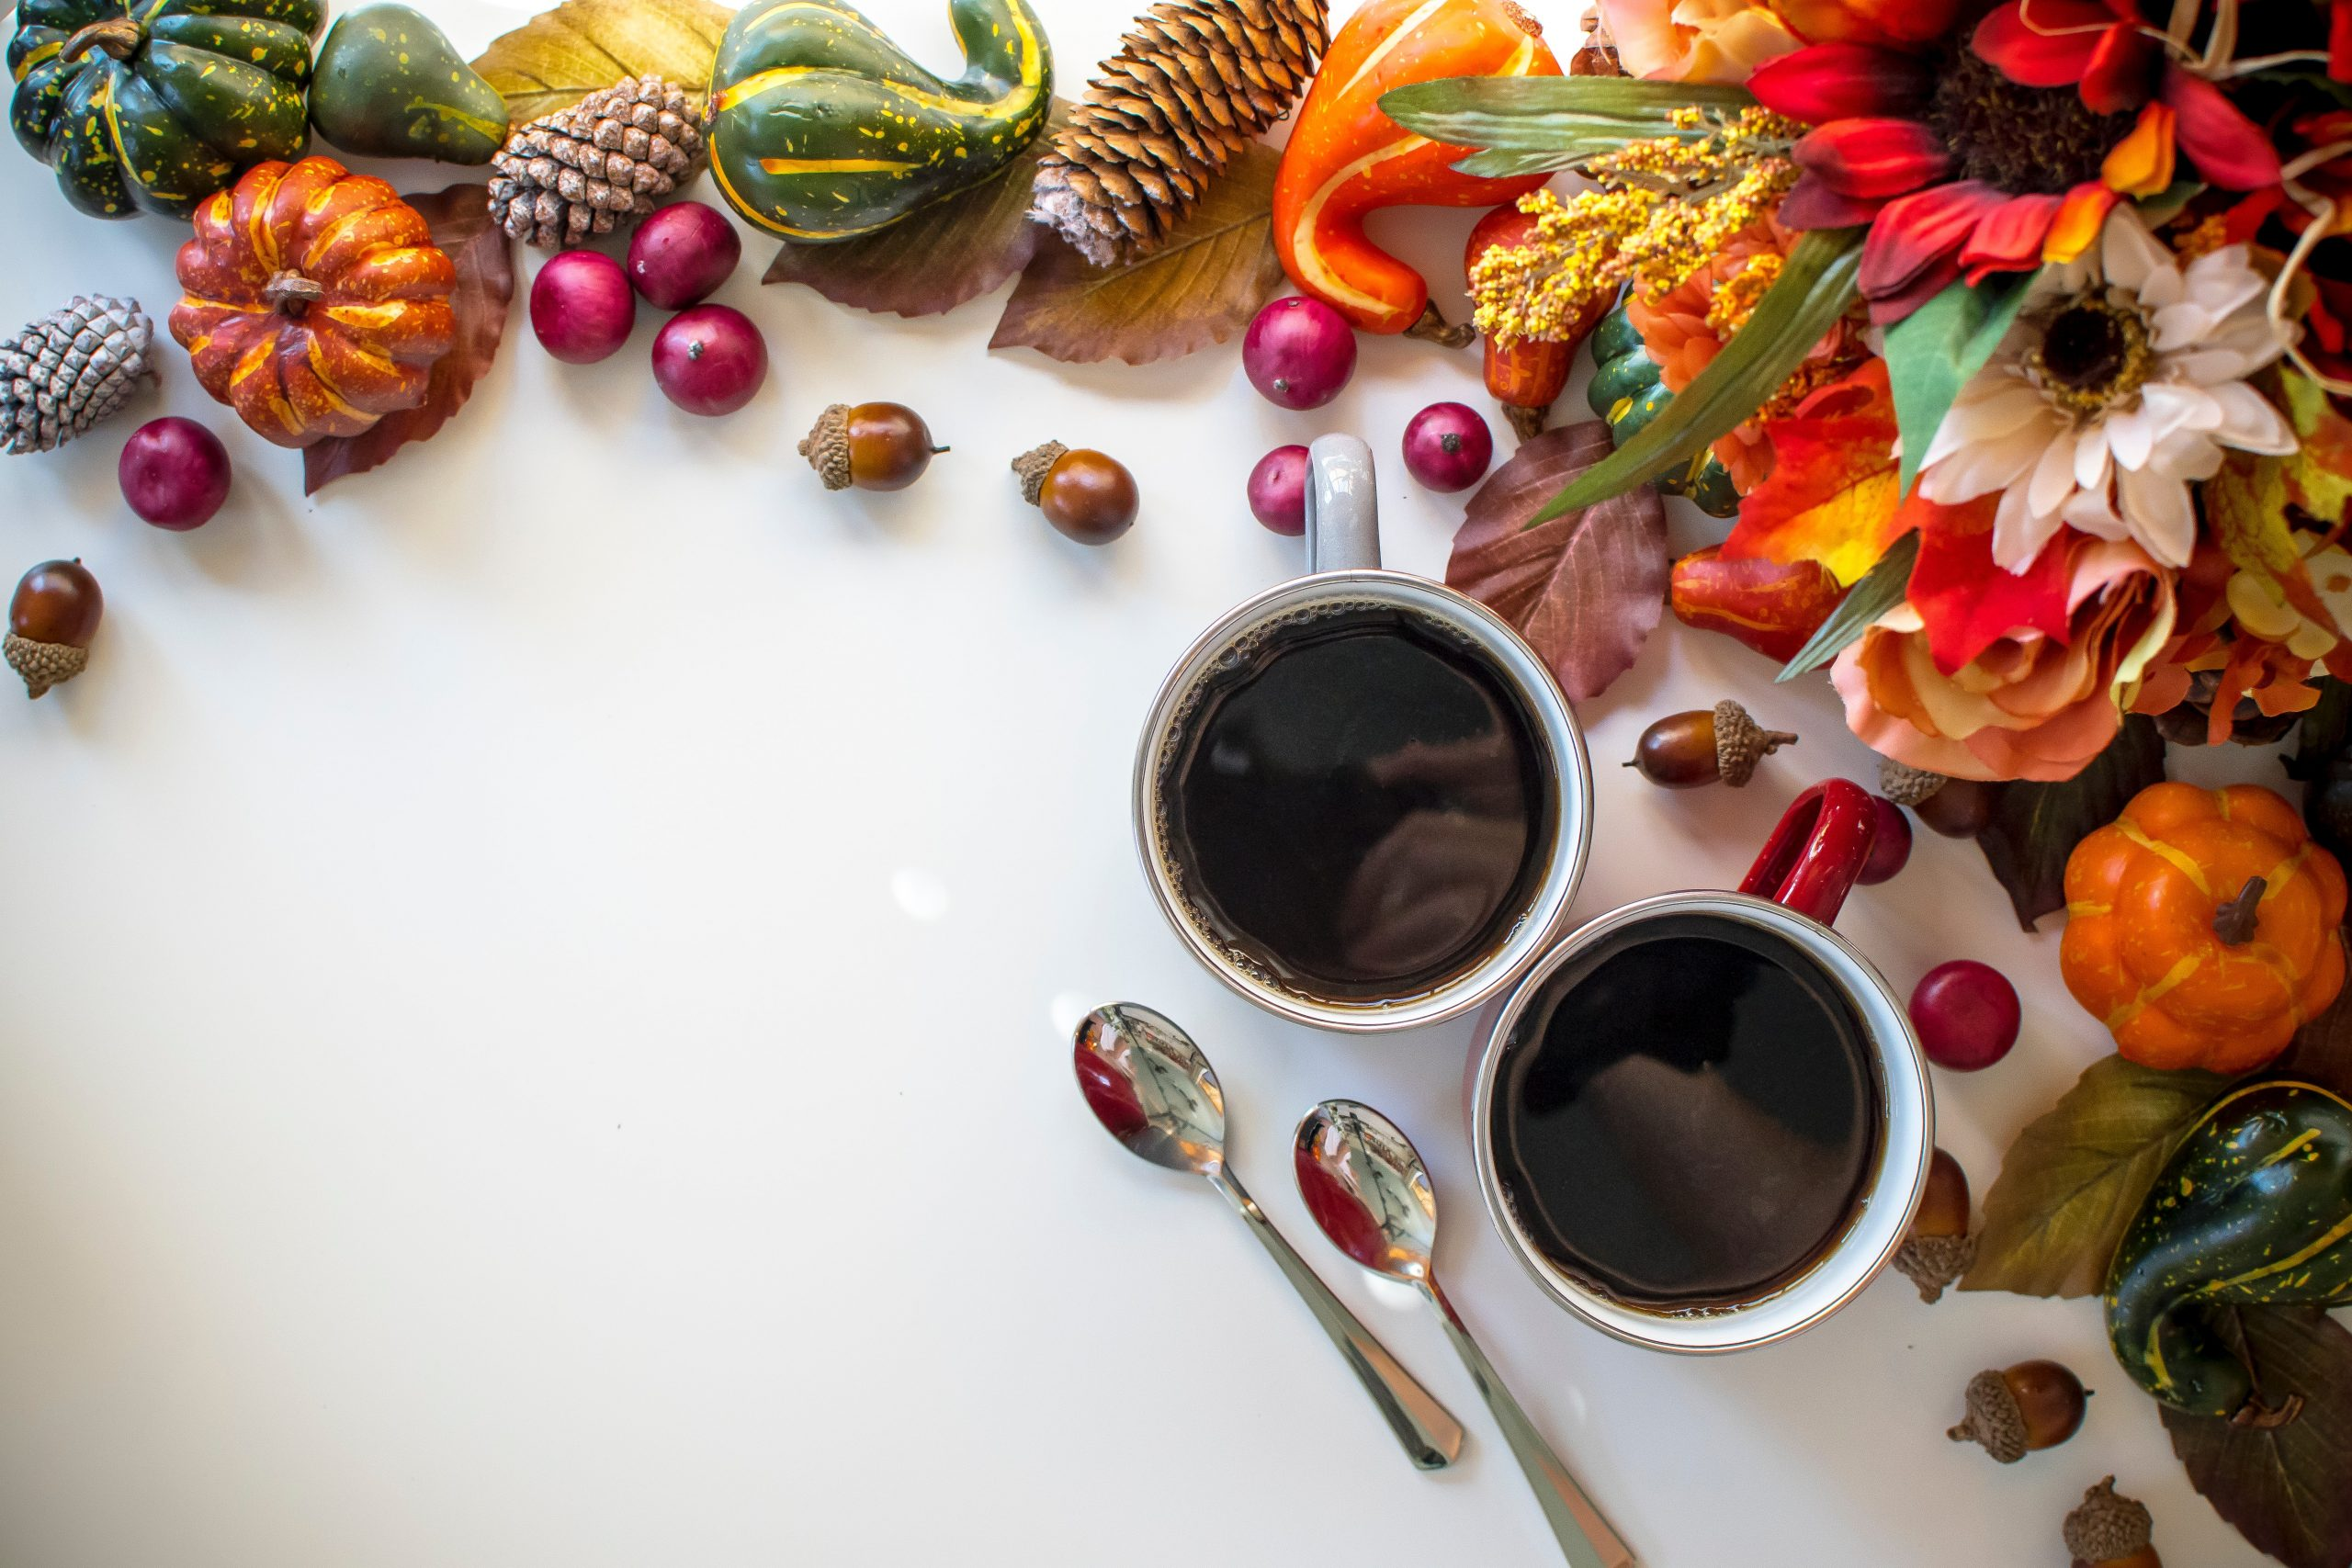 A decorative image of colorful gourds and to cups of black coffee with two spoons.